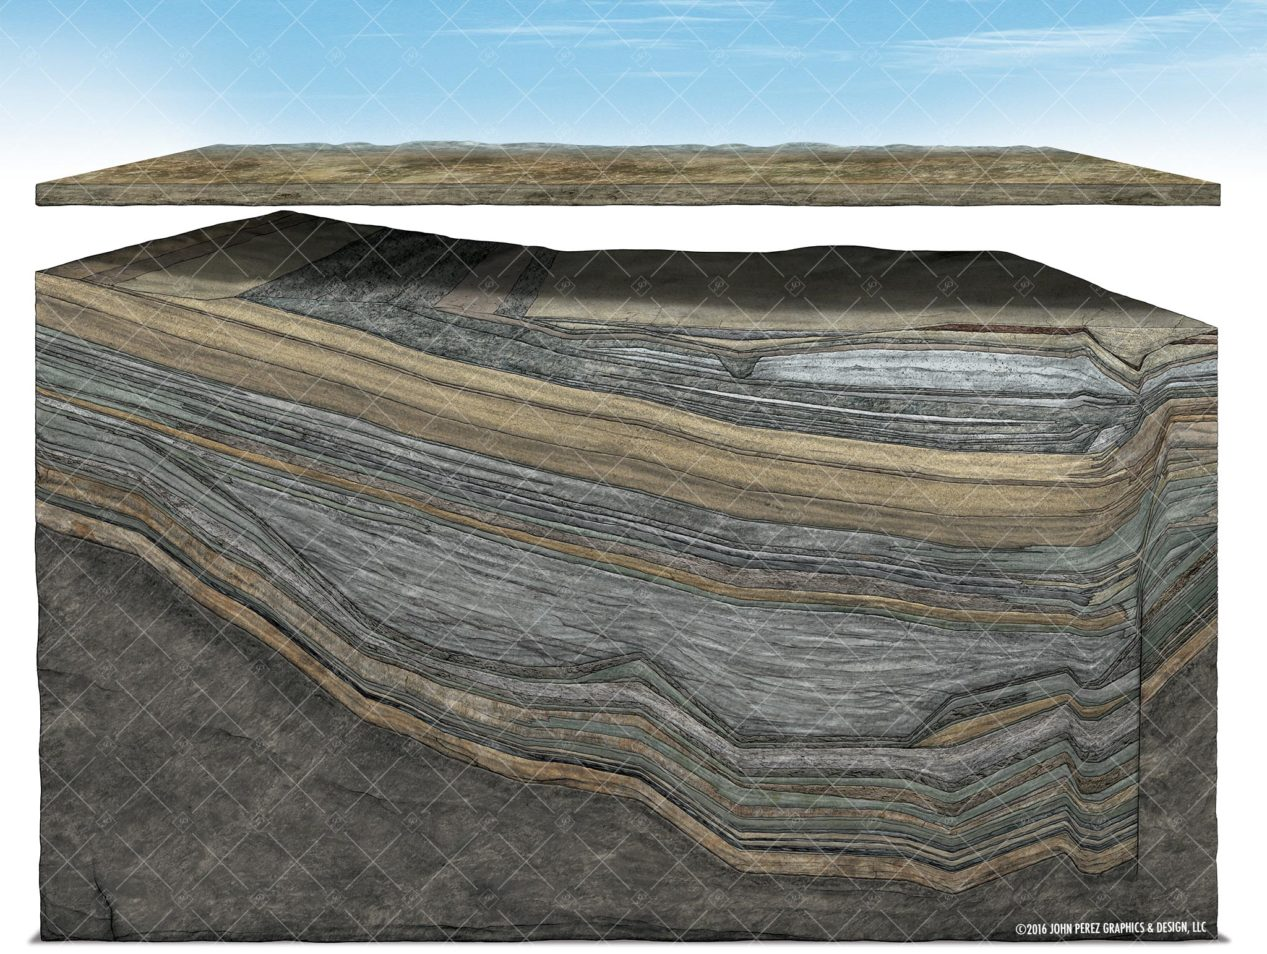 john perez graphics, Permian Delaware Basin Schematic, drilling geology, oil and gas graphics, oil and gas schematics, Permian Geology, Permian Basin, oil and gas illustration